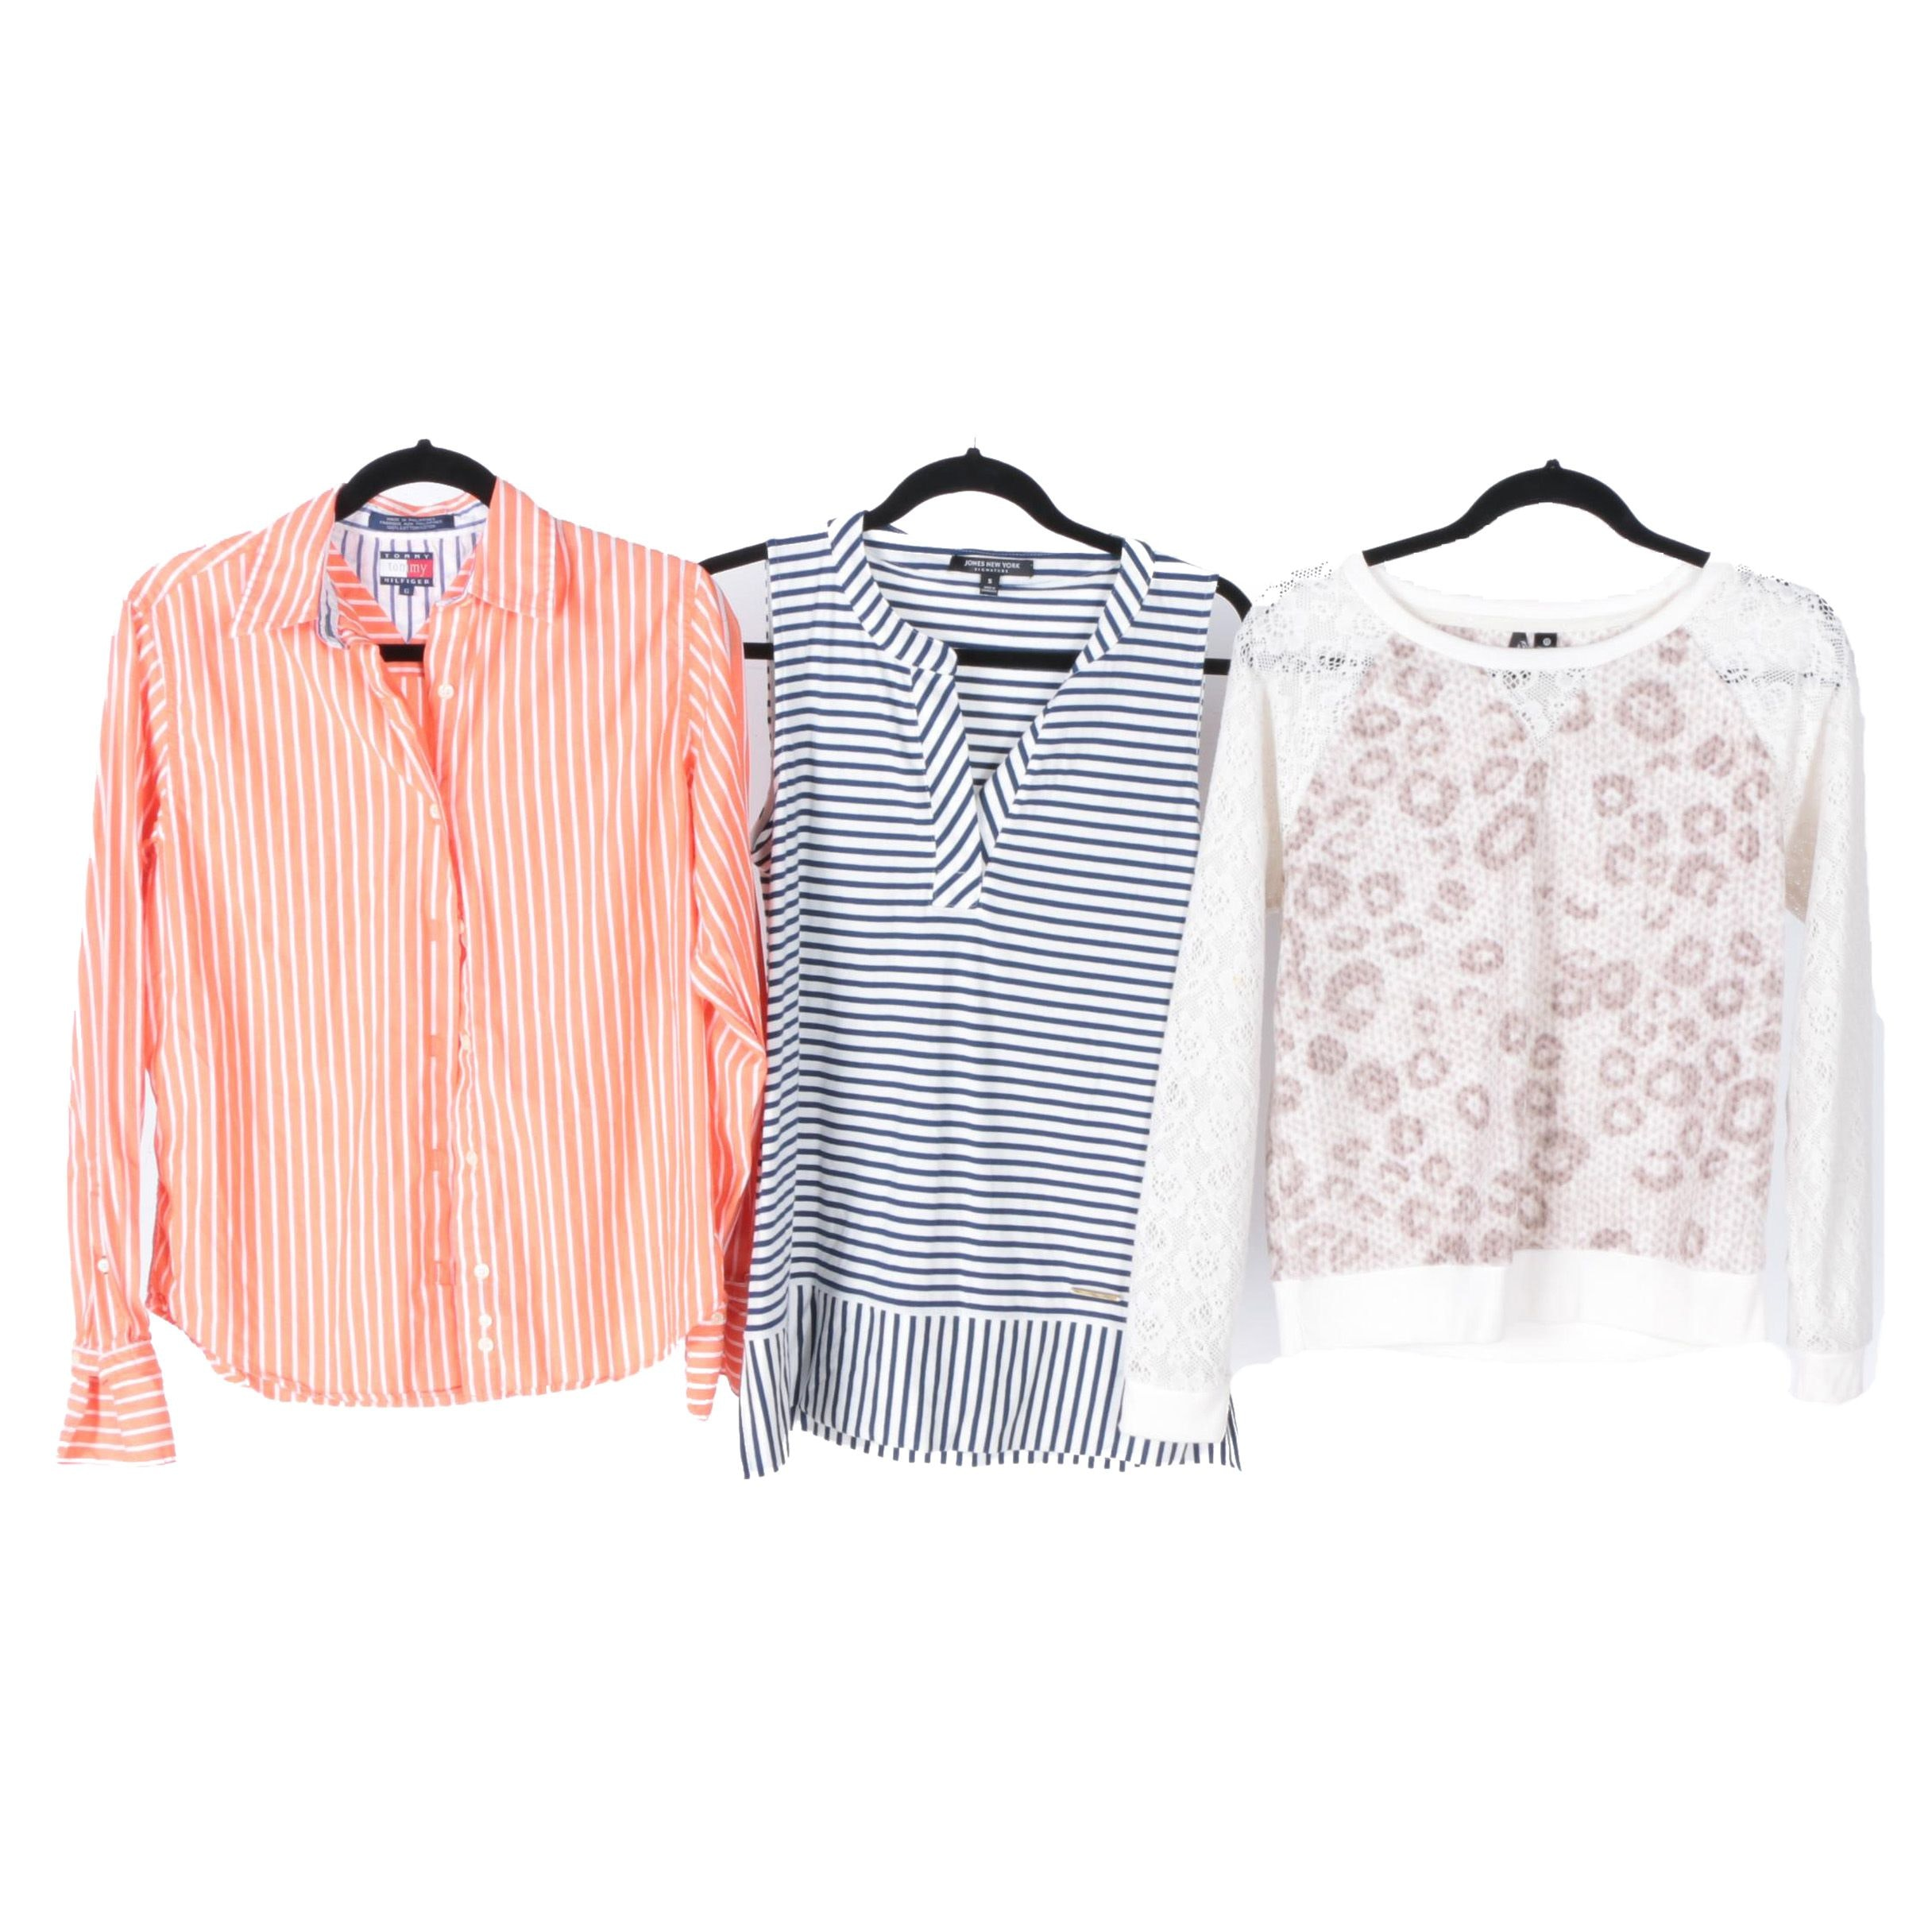 Three Women's Shirts Including Tommy Hilfiger and Jones New York